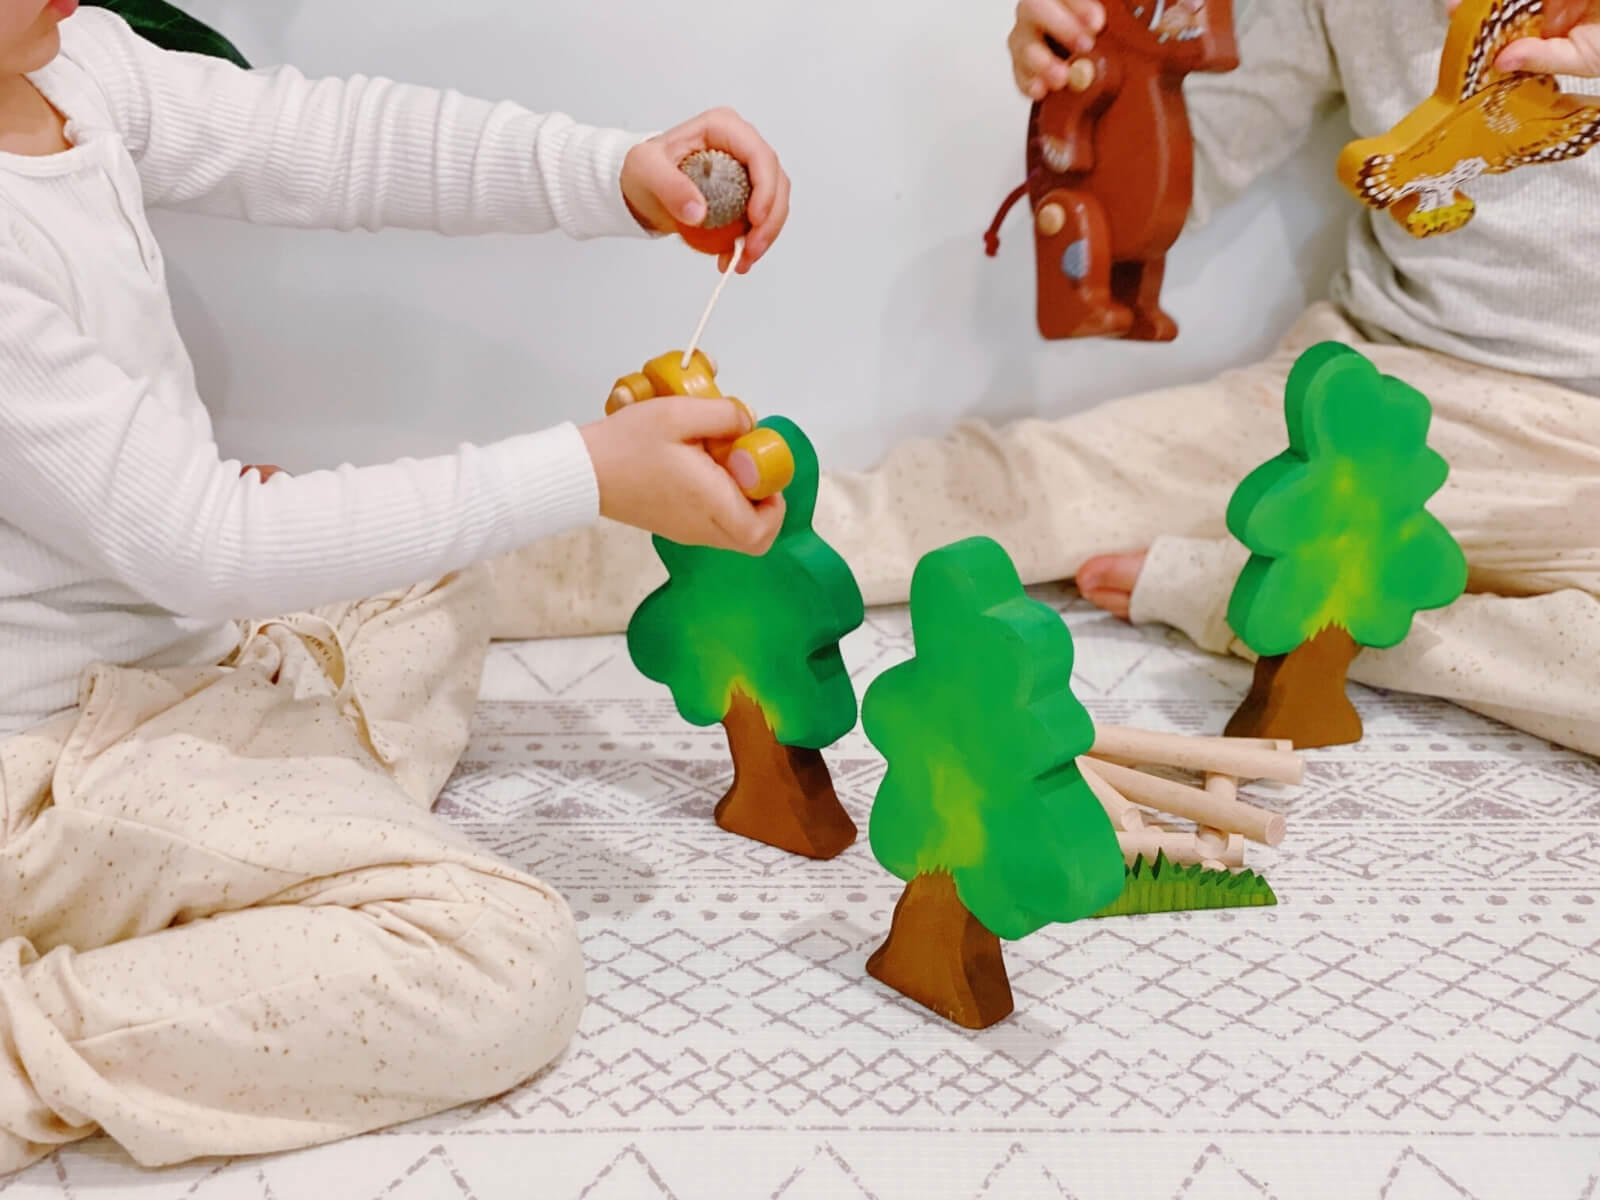 Retelling the story of The Gruffalo using the figurines and other small world play items